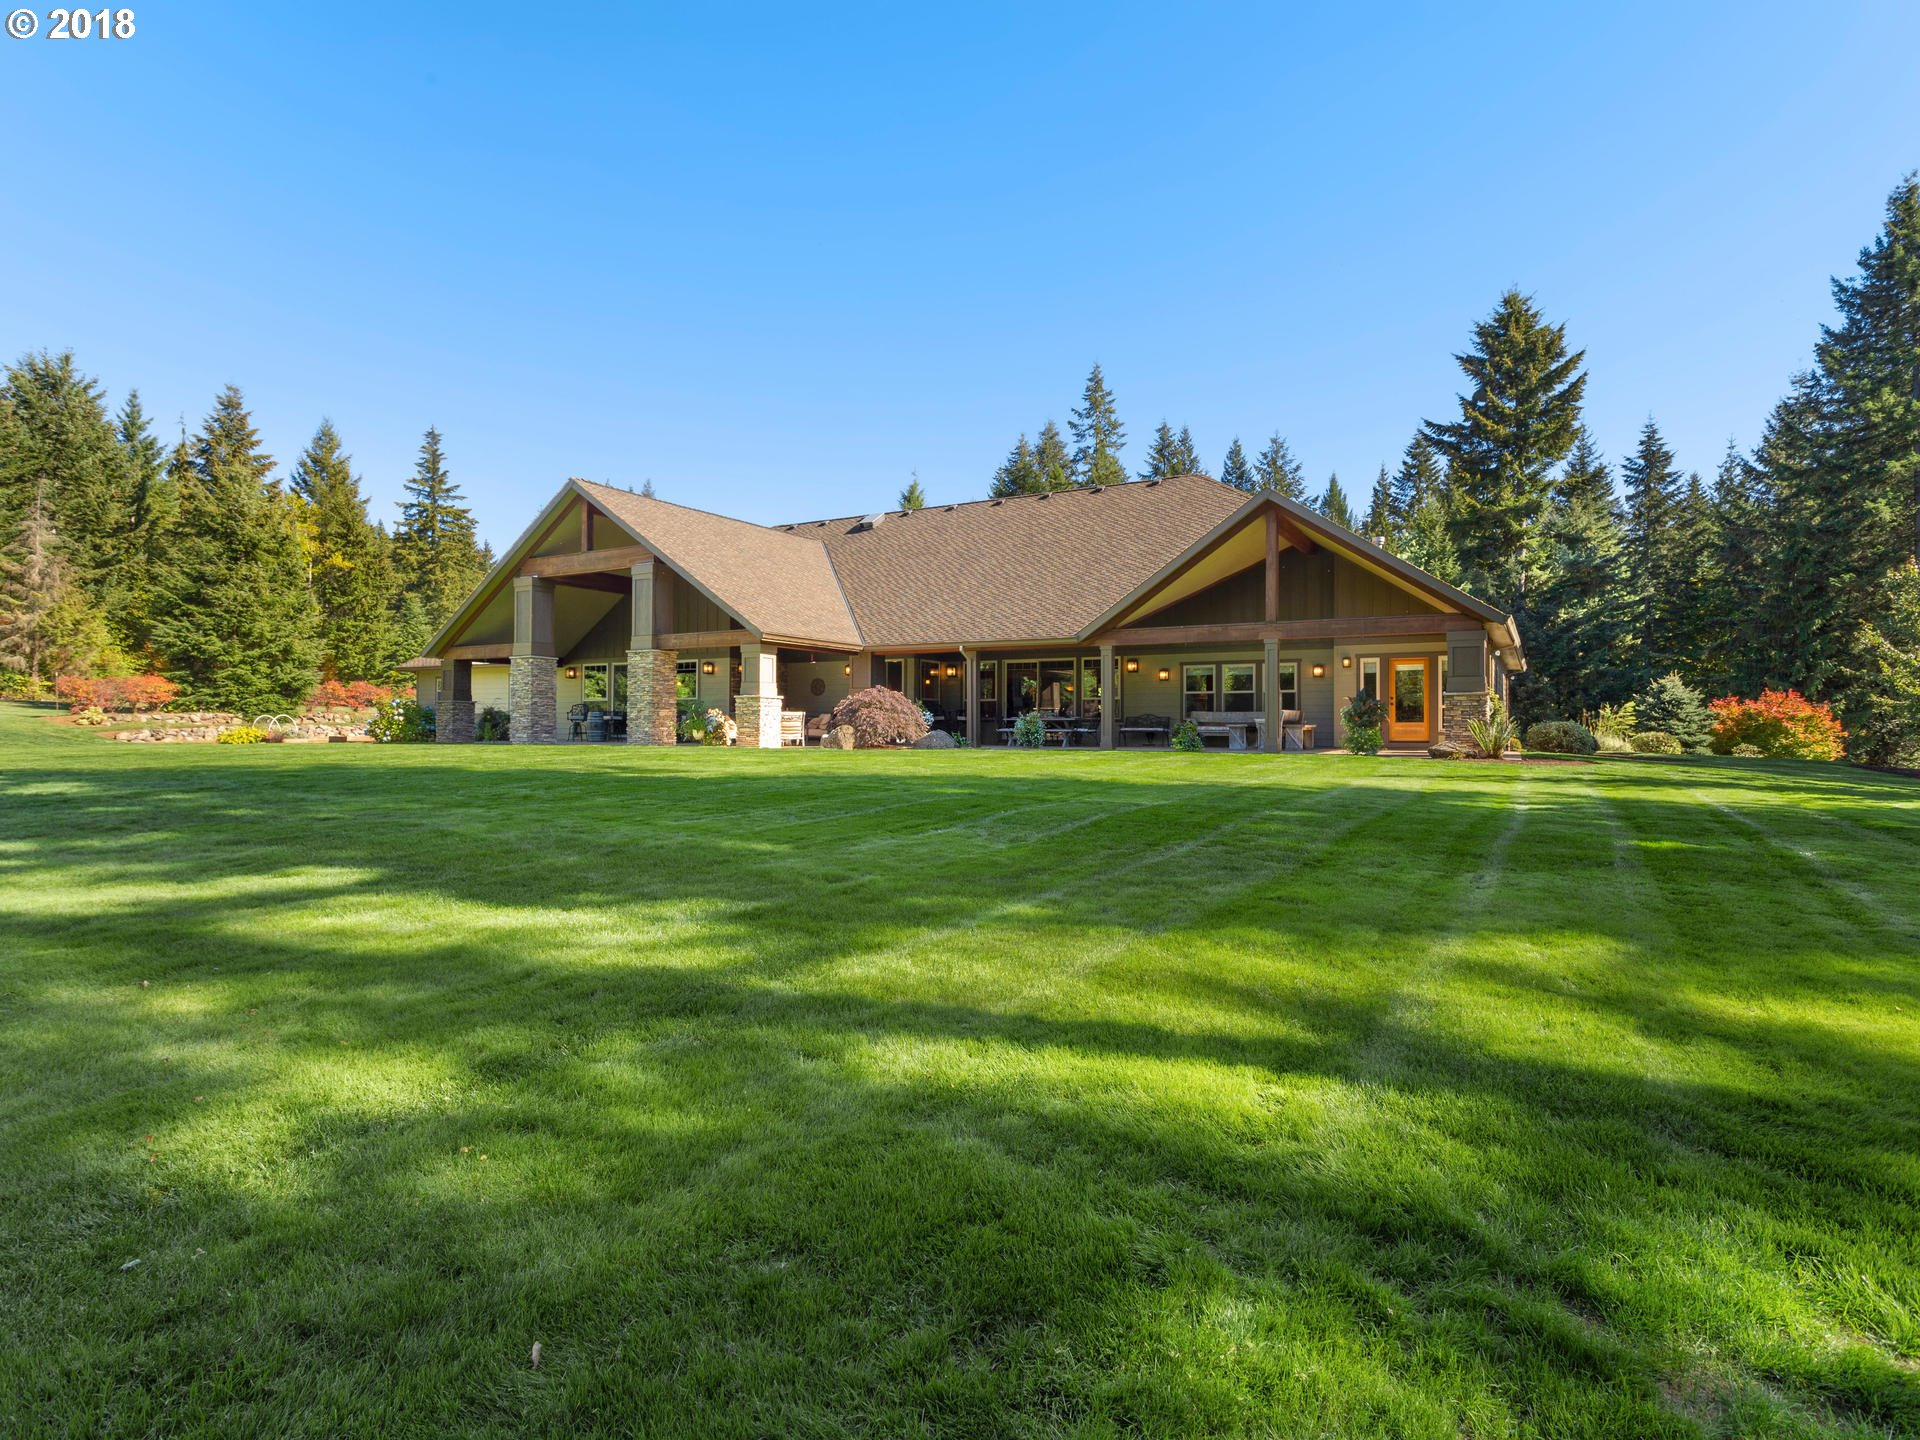 42453 SE PAGH RD Sandy, OR 97055 - MLS #: 18571140